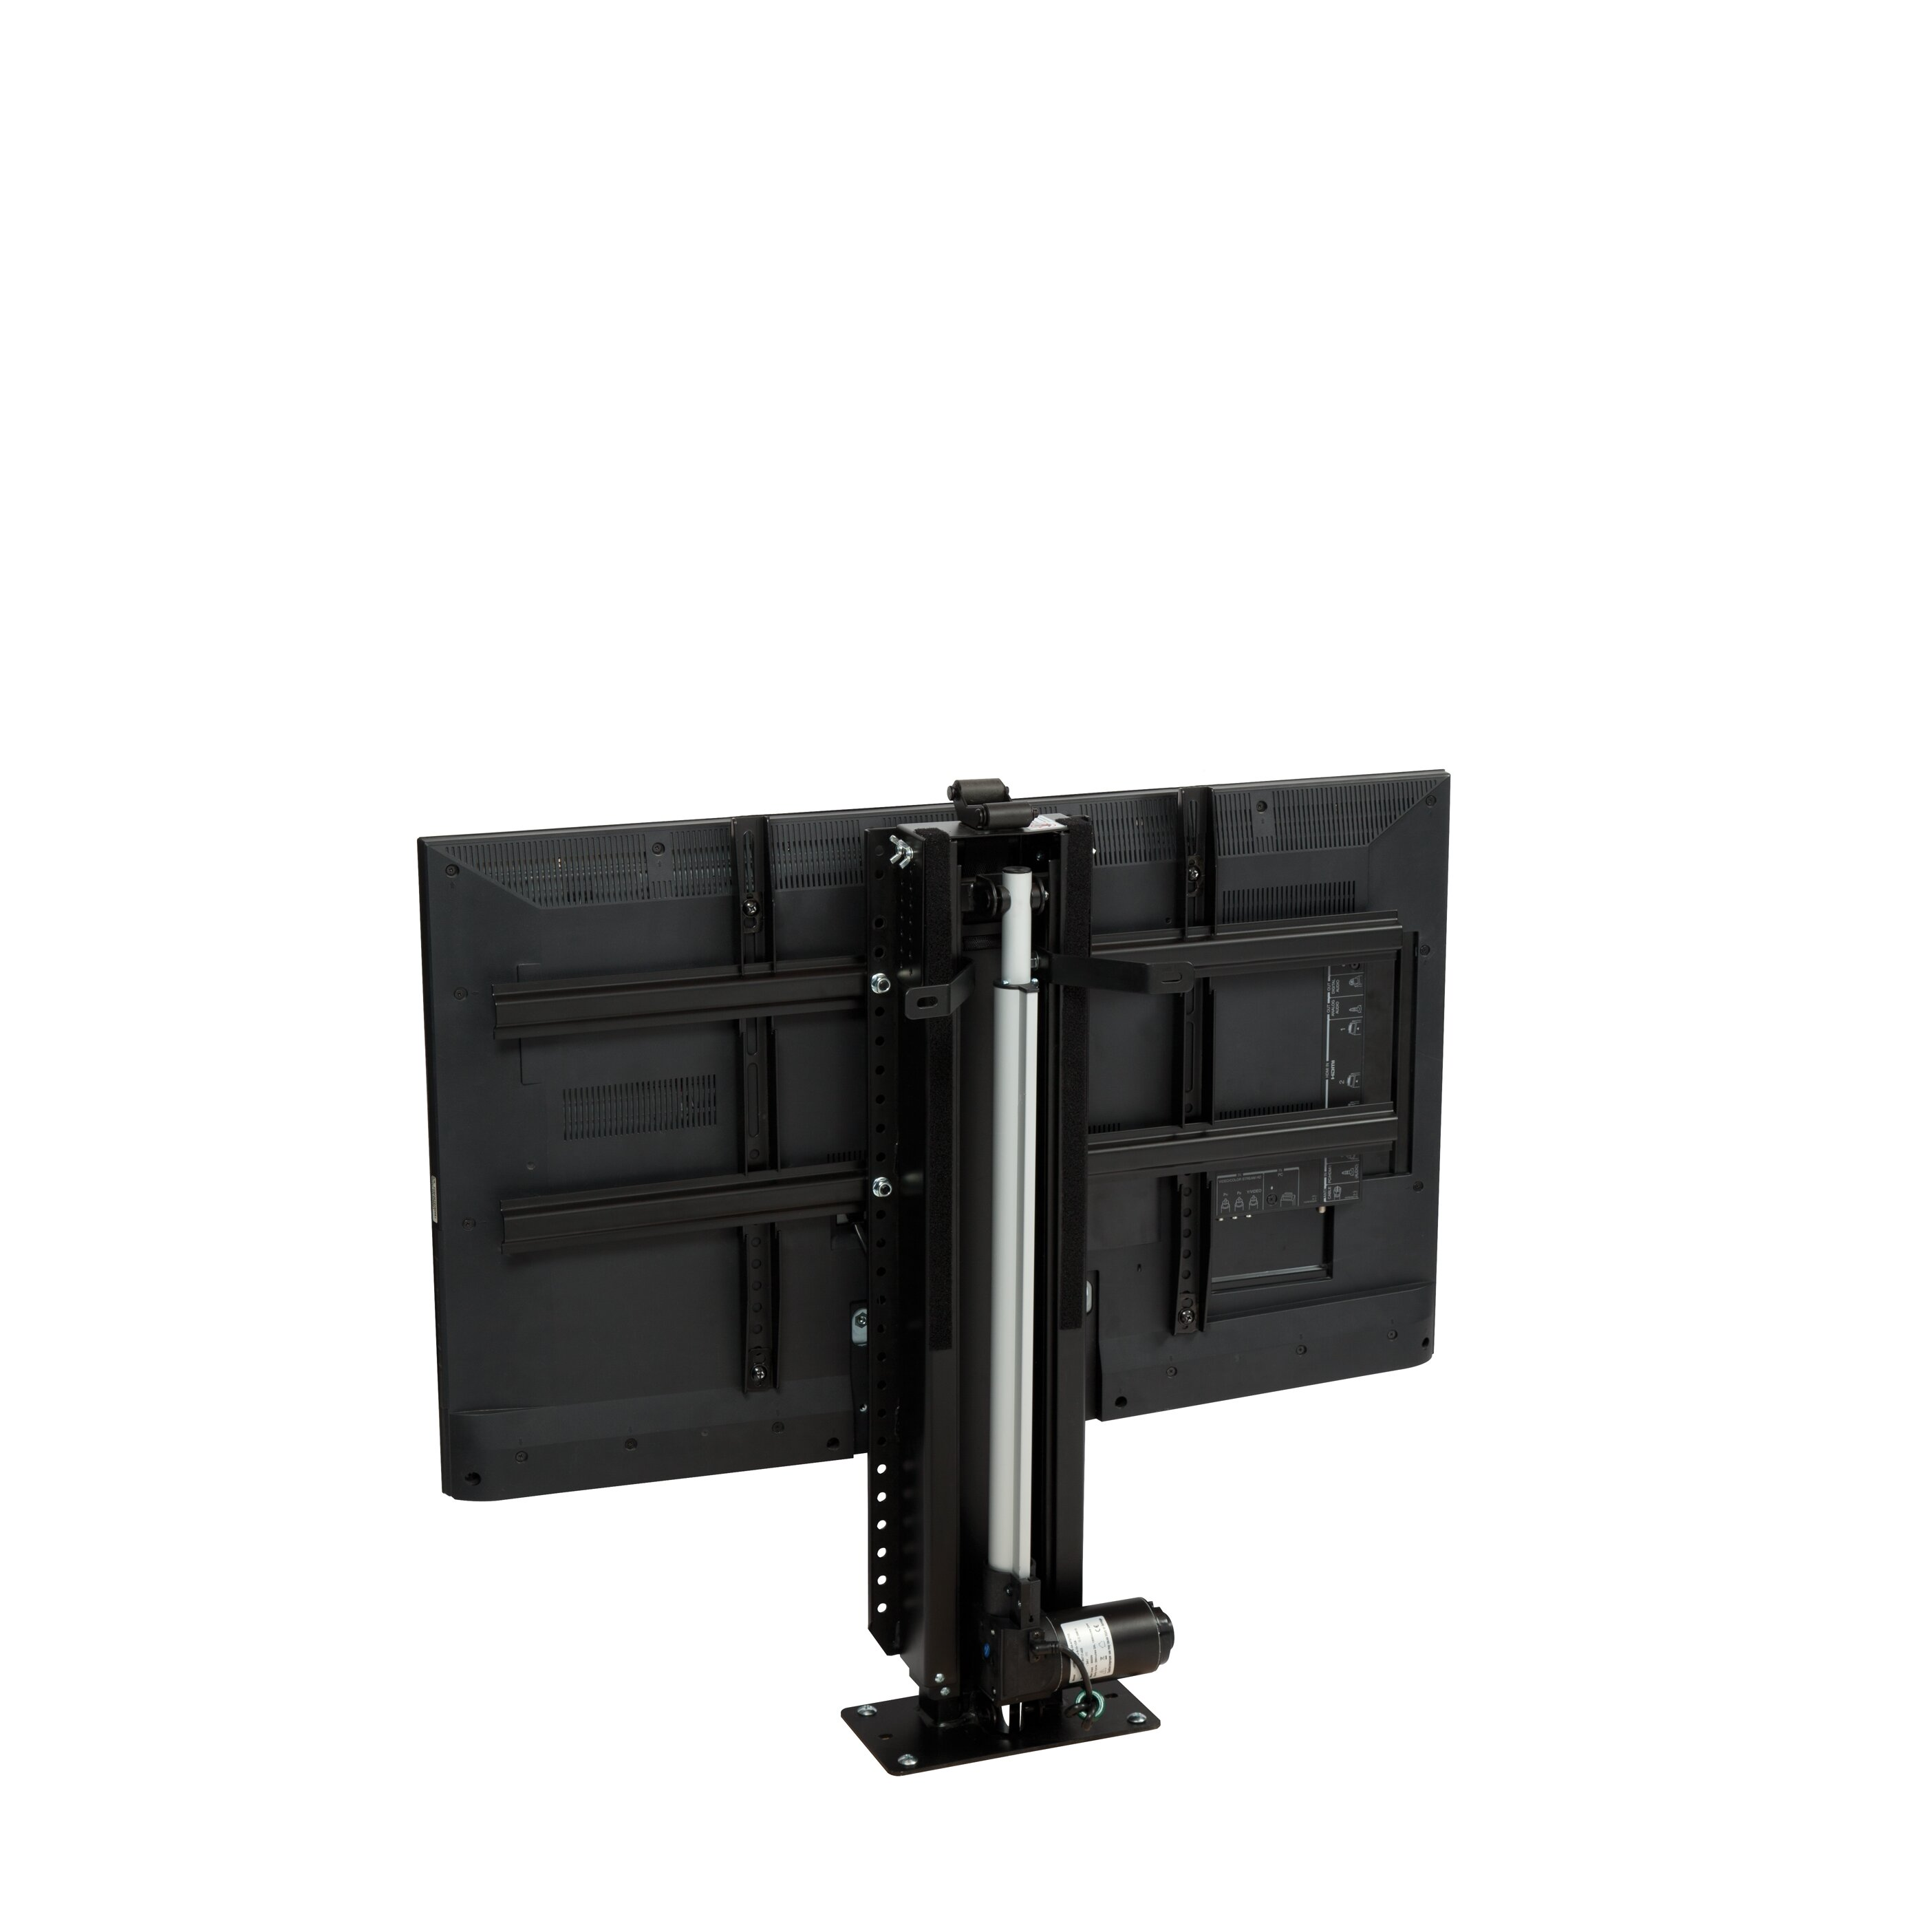 Touchstone Whisper Lift Ii Pro Motorized Floor Stand Mount